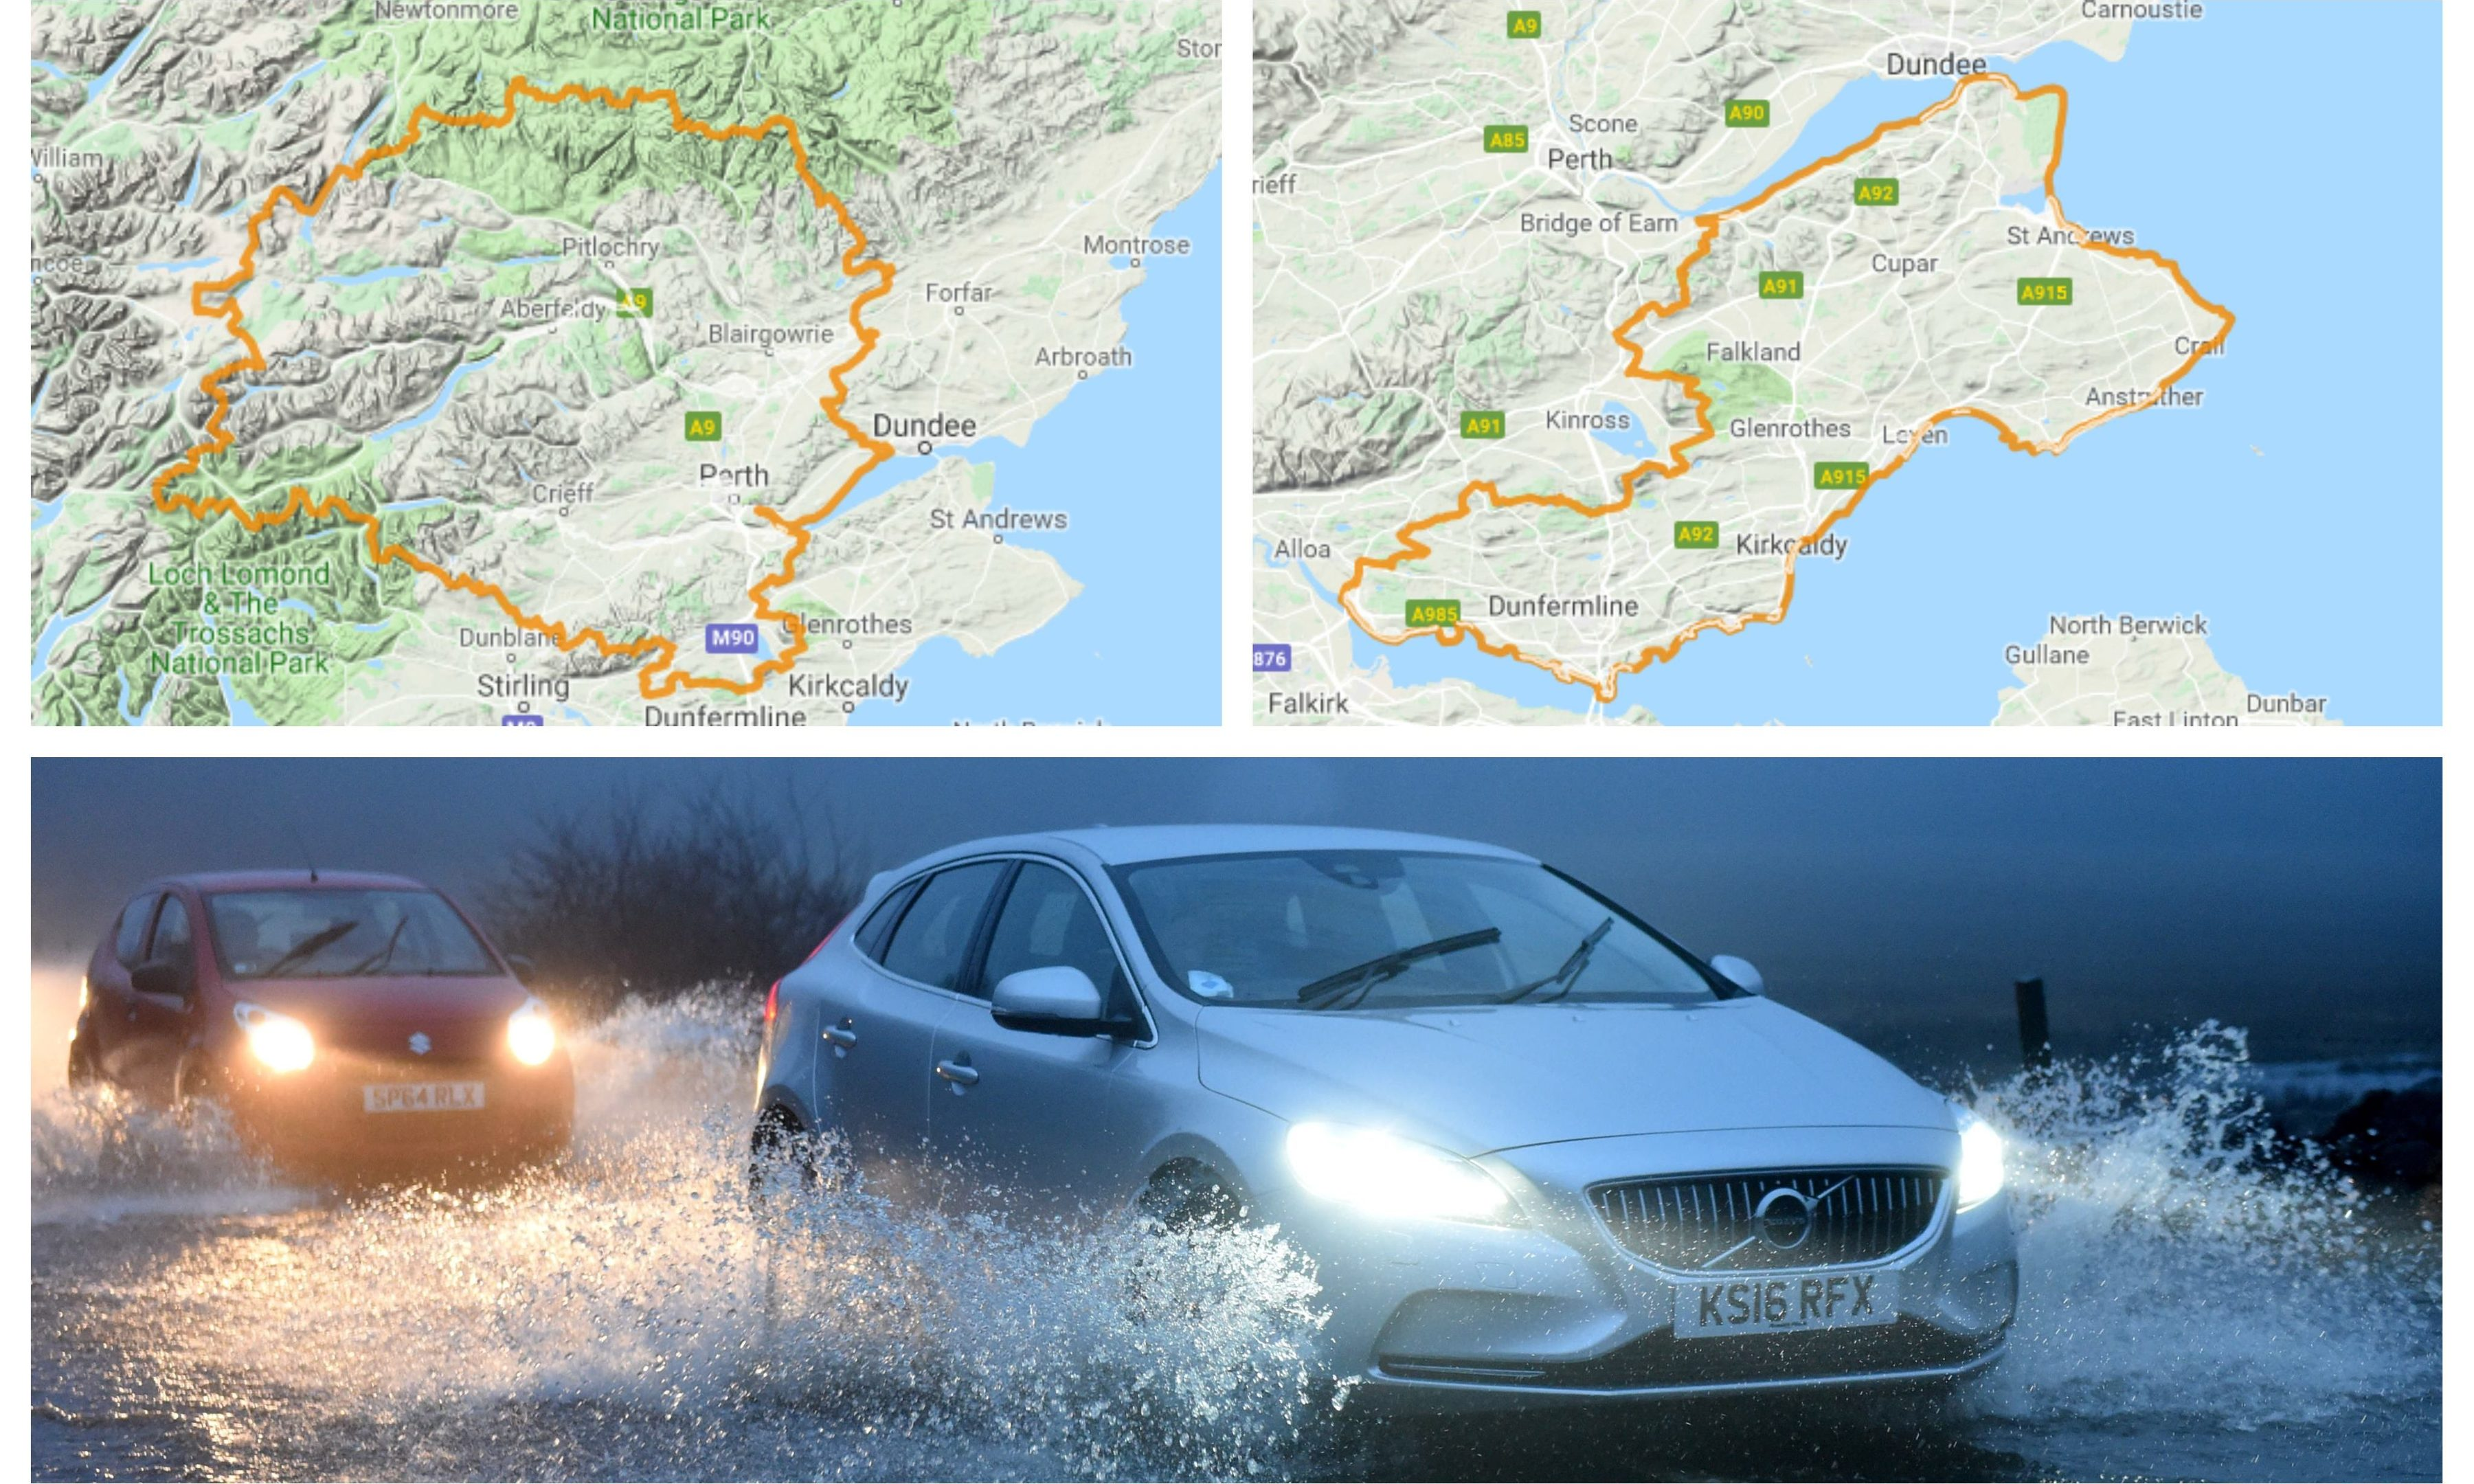 Flood alerts are in place for Tayside and Fife